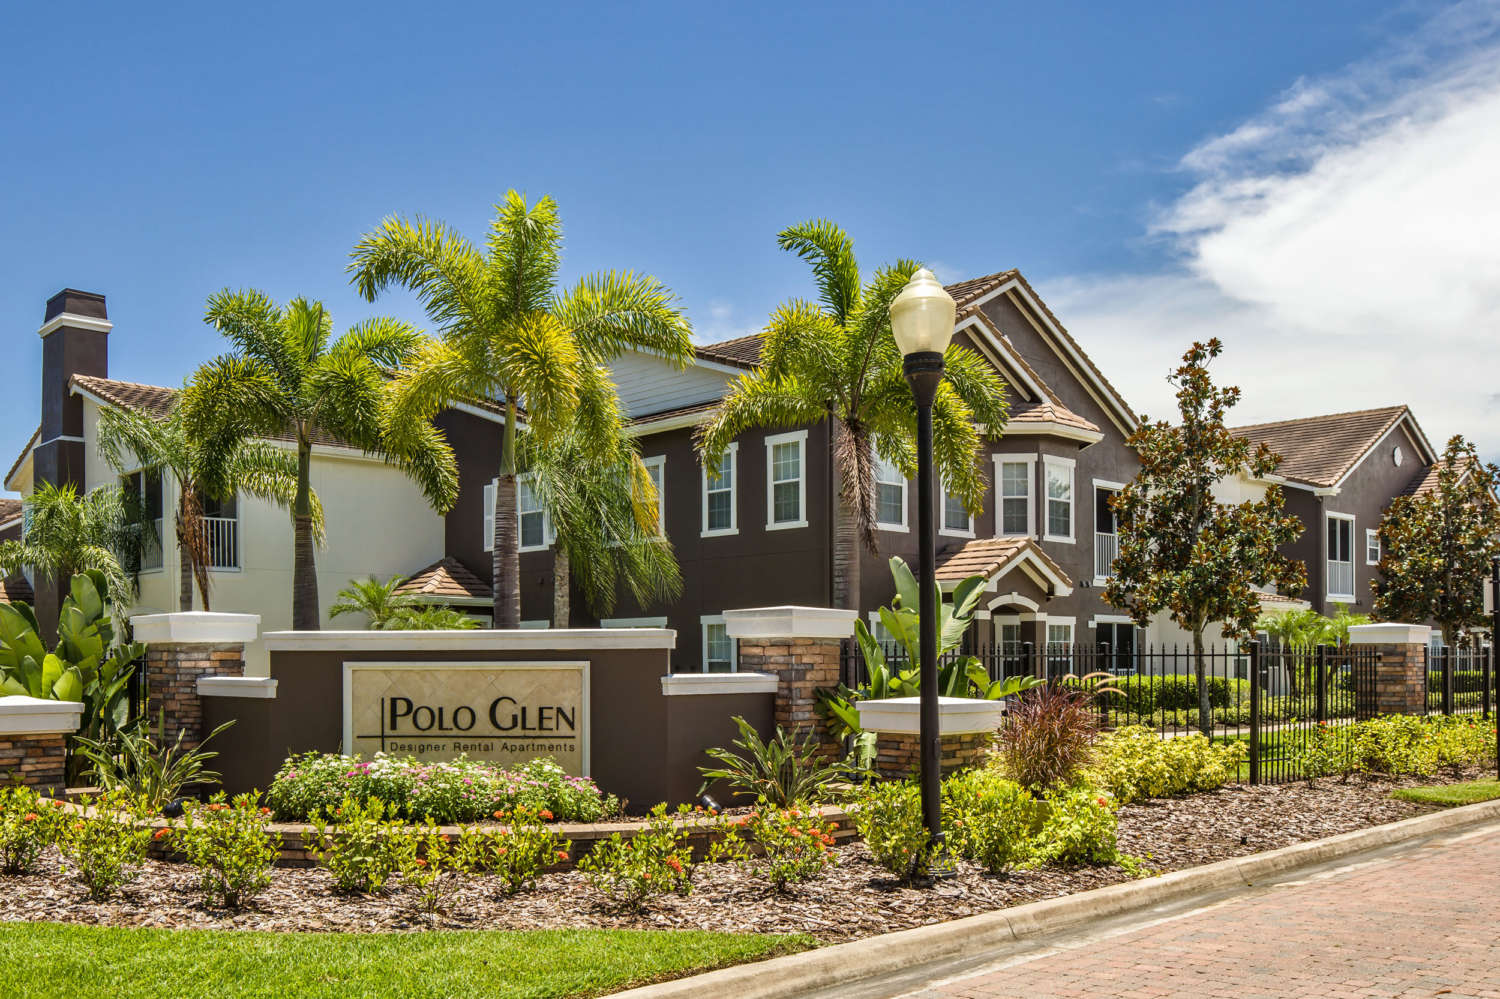 CRC Acquires 252-Unit Polo Glen Apartment Community in Rockledge, FL for $38M -